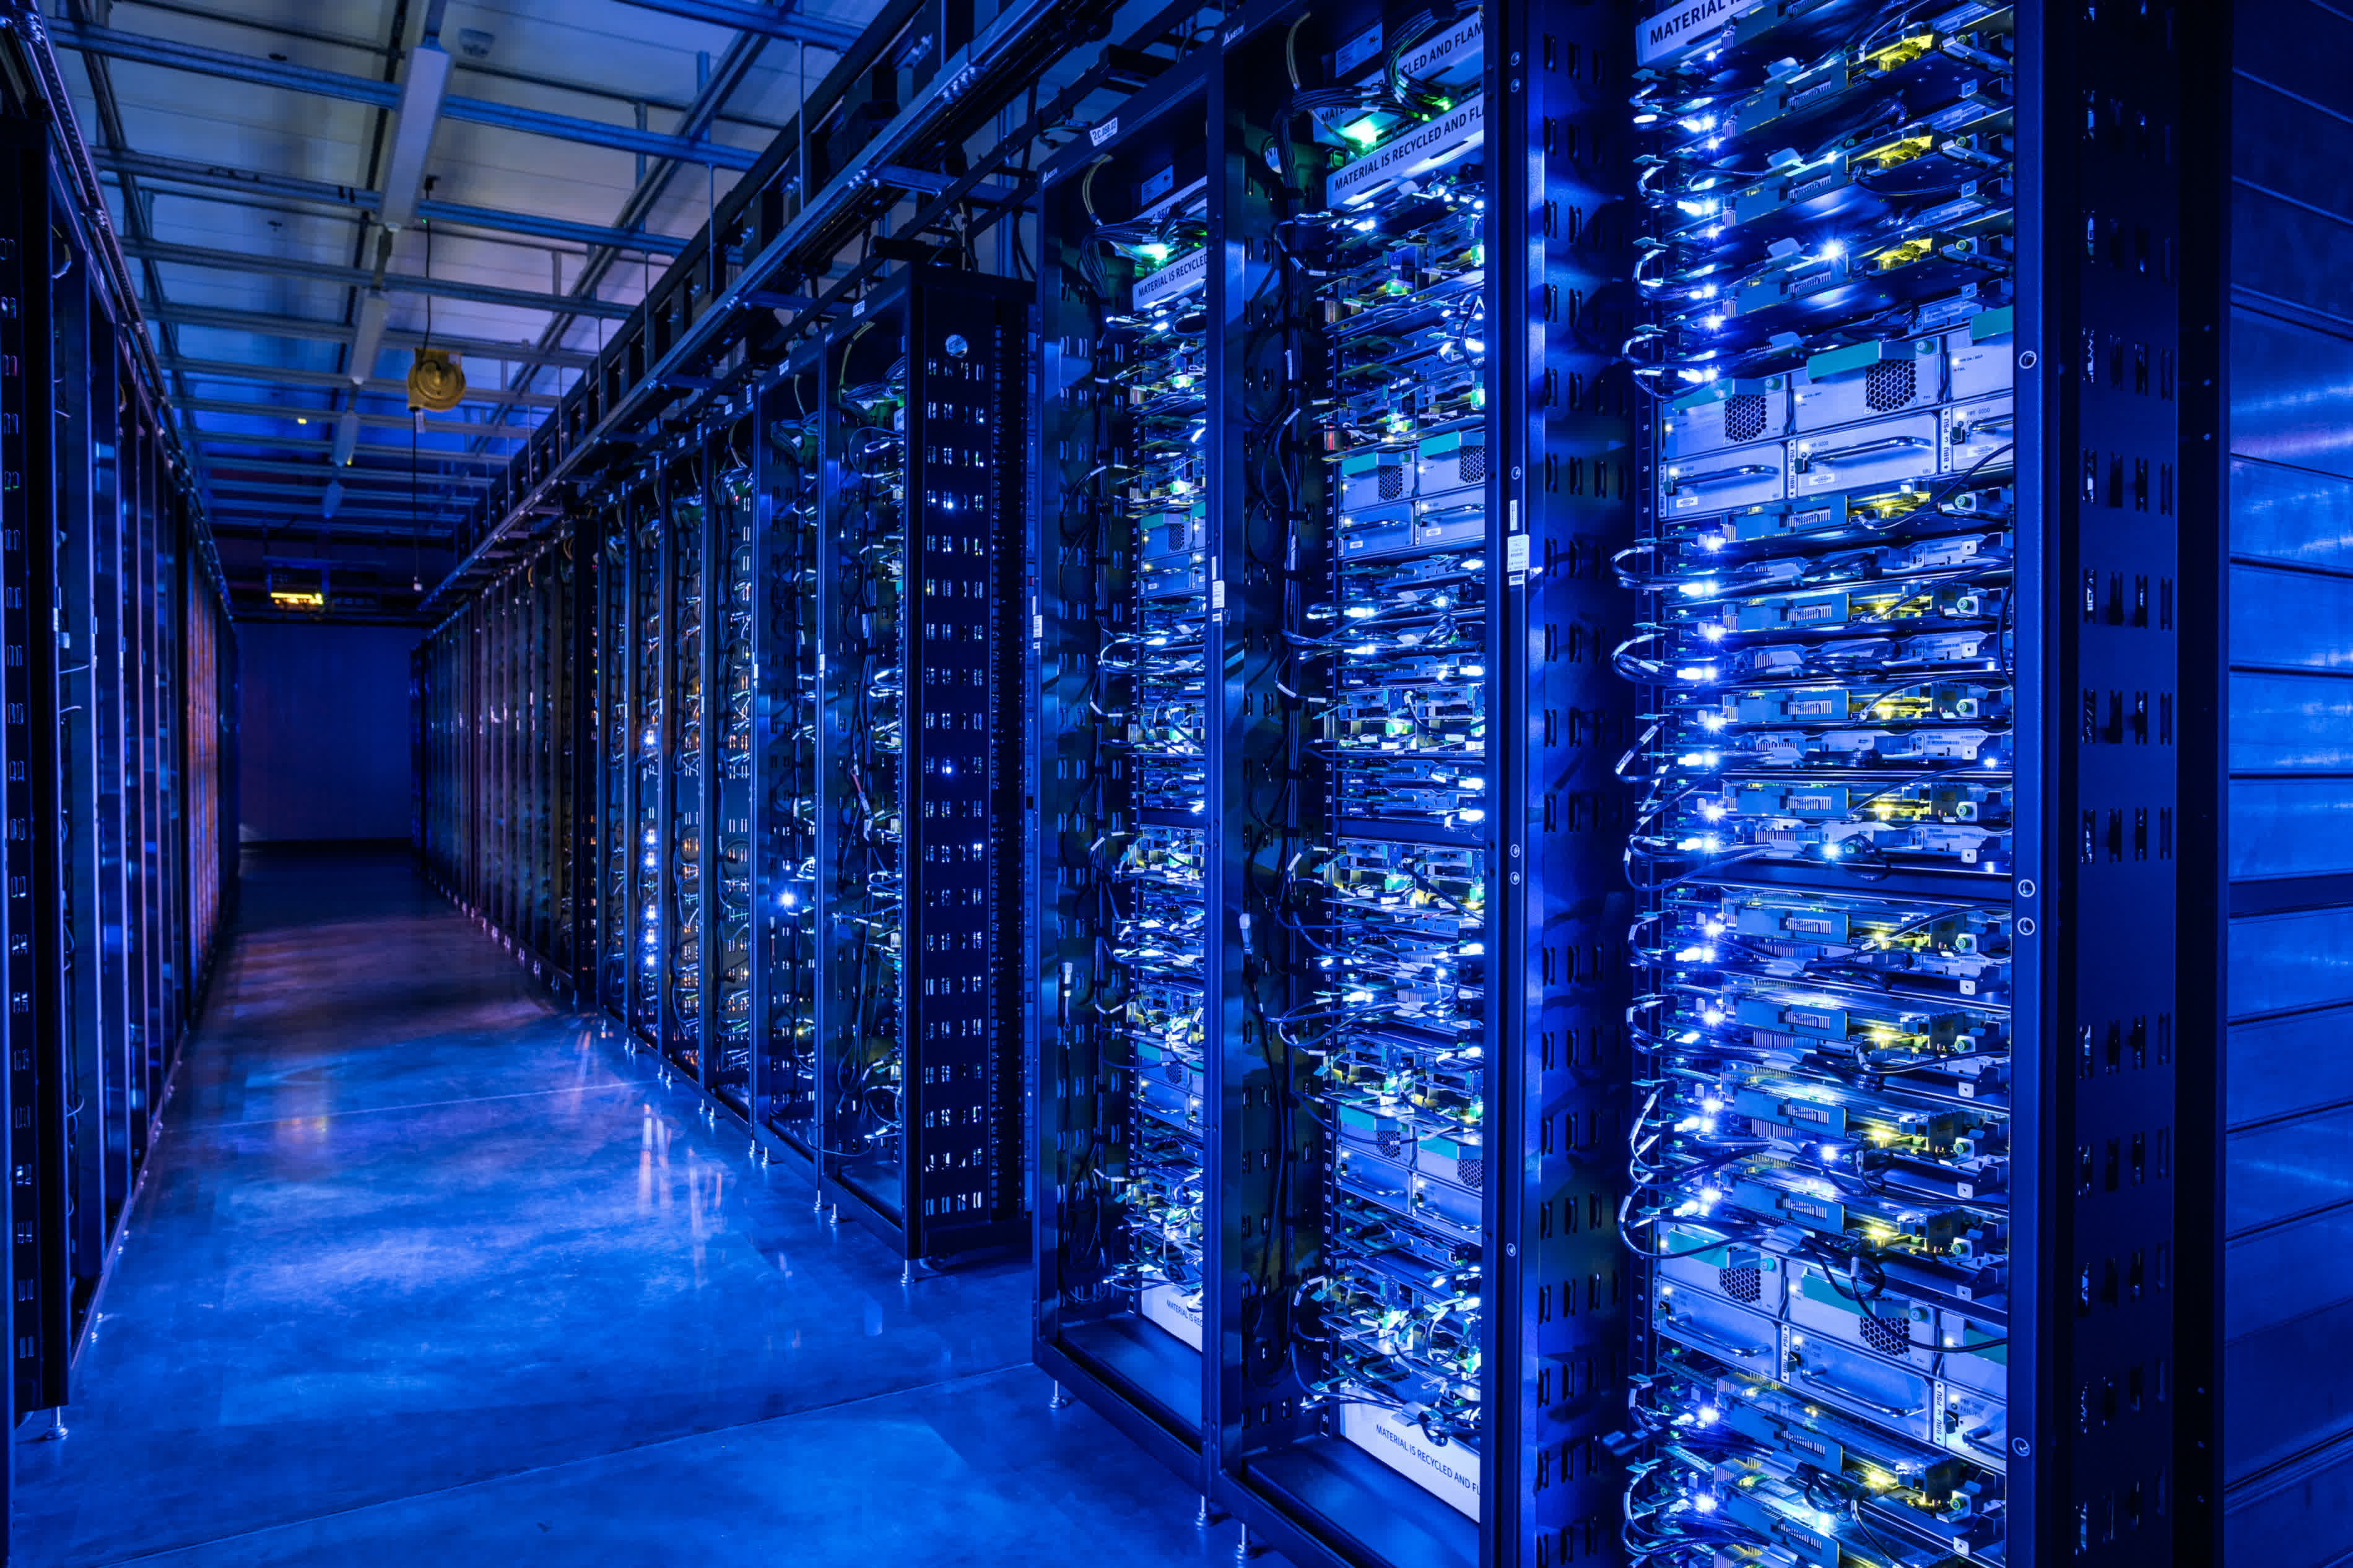 Facebook said to be working on custom silicon for servers